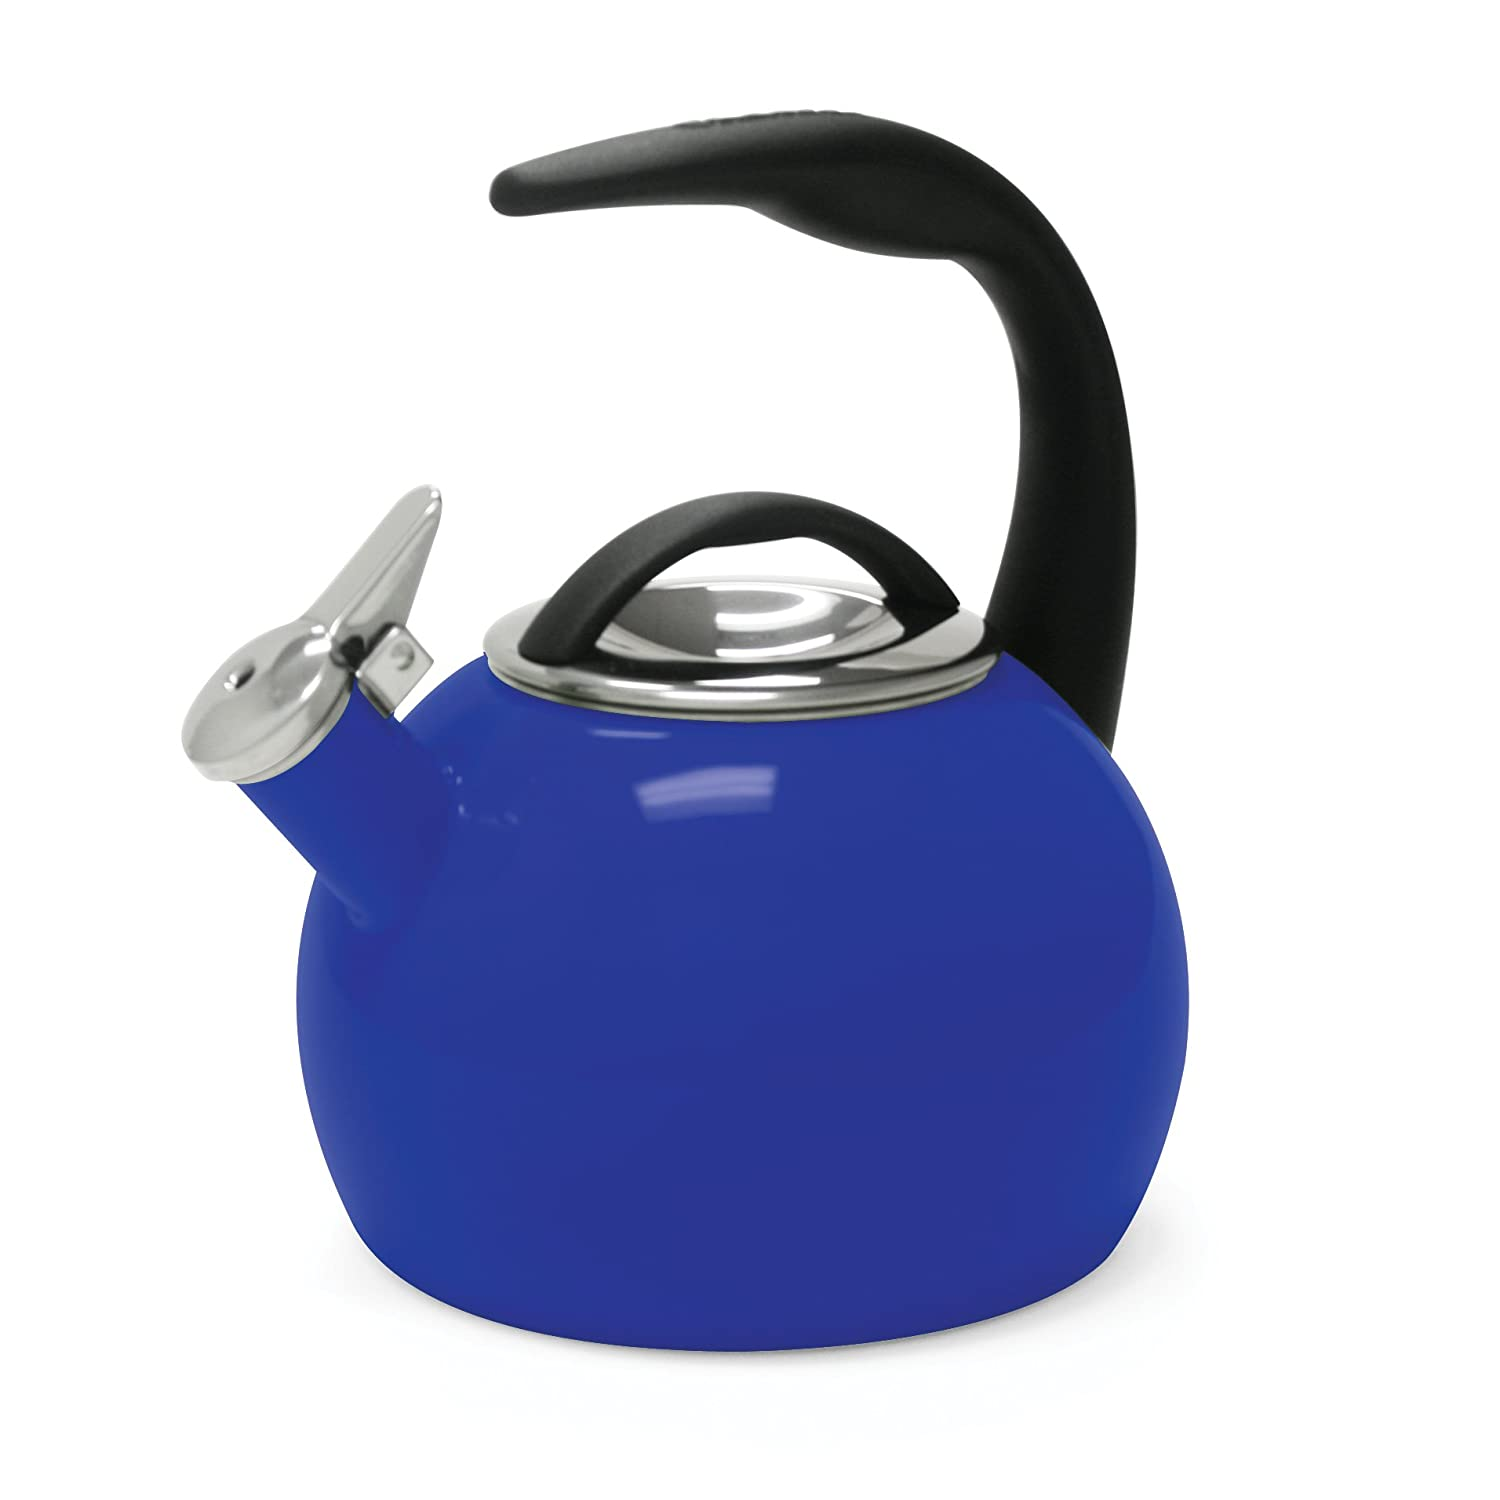 amazoncom chantal th anniversary quart enamel on steel  - amazoncom chantal th anniversary quart enamel on steel teakettleorange chantal tea kettle kitchen  dining